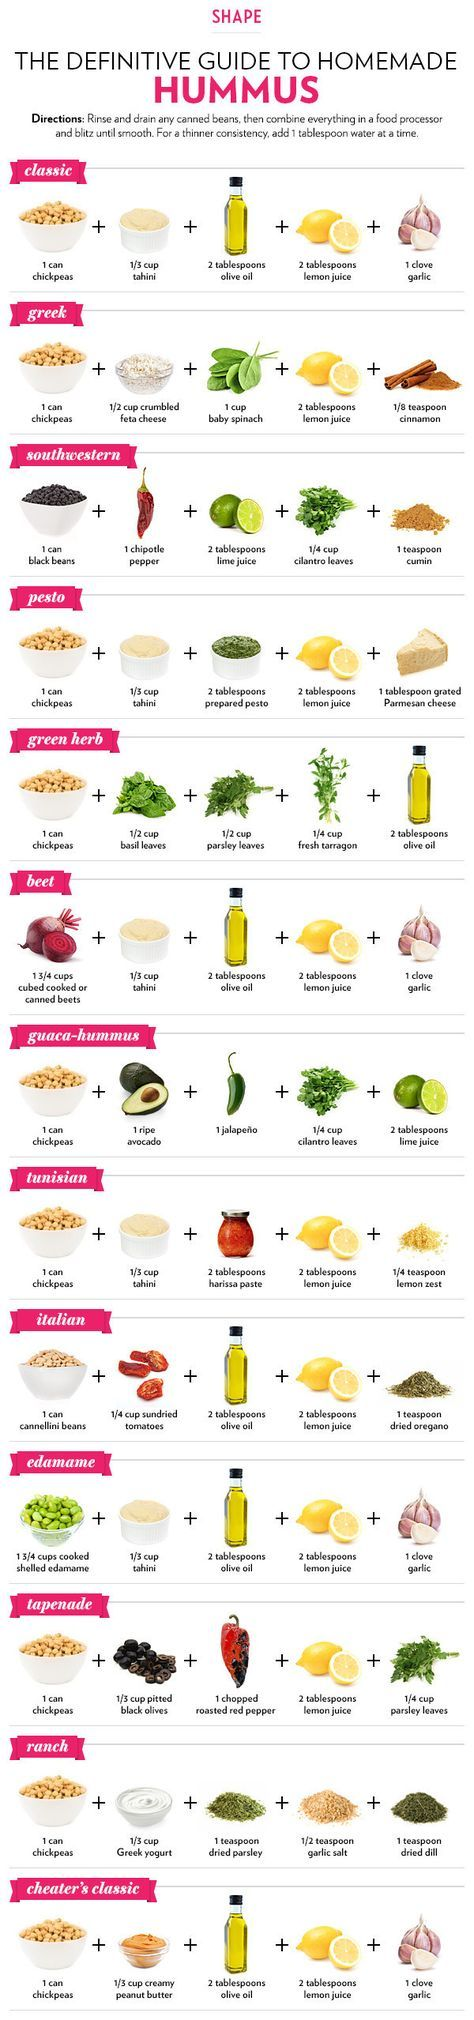 The definitive guide to homemade hummus. 13 different kinds! Replace dairy with non-dairy alternatives, and replace peanut butter with any other nut butter, or even soybutter or sunflower butter if you have a nut allergy. #DIY #hummus